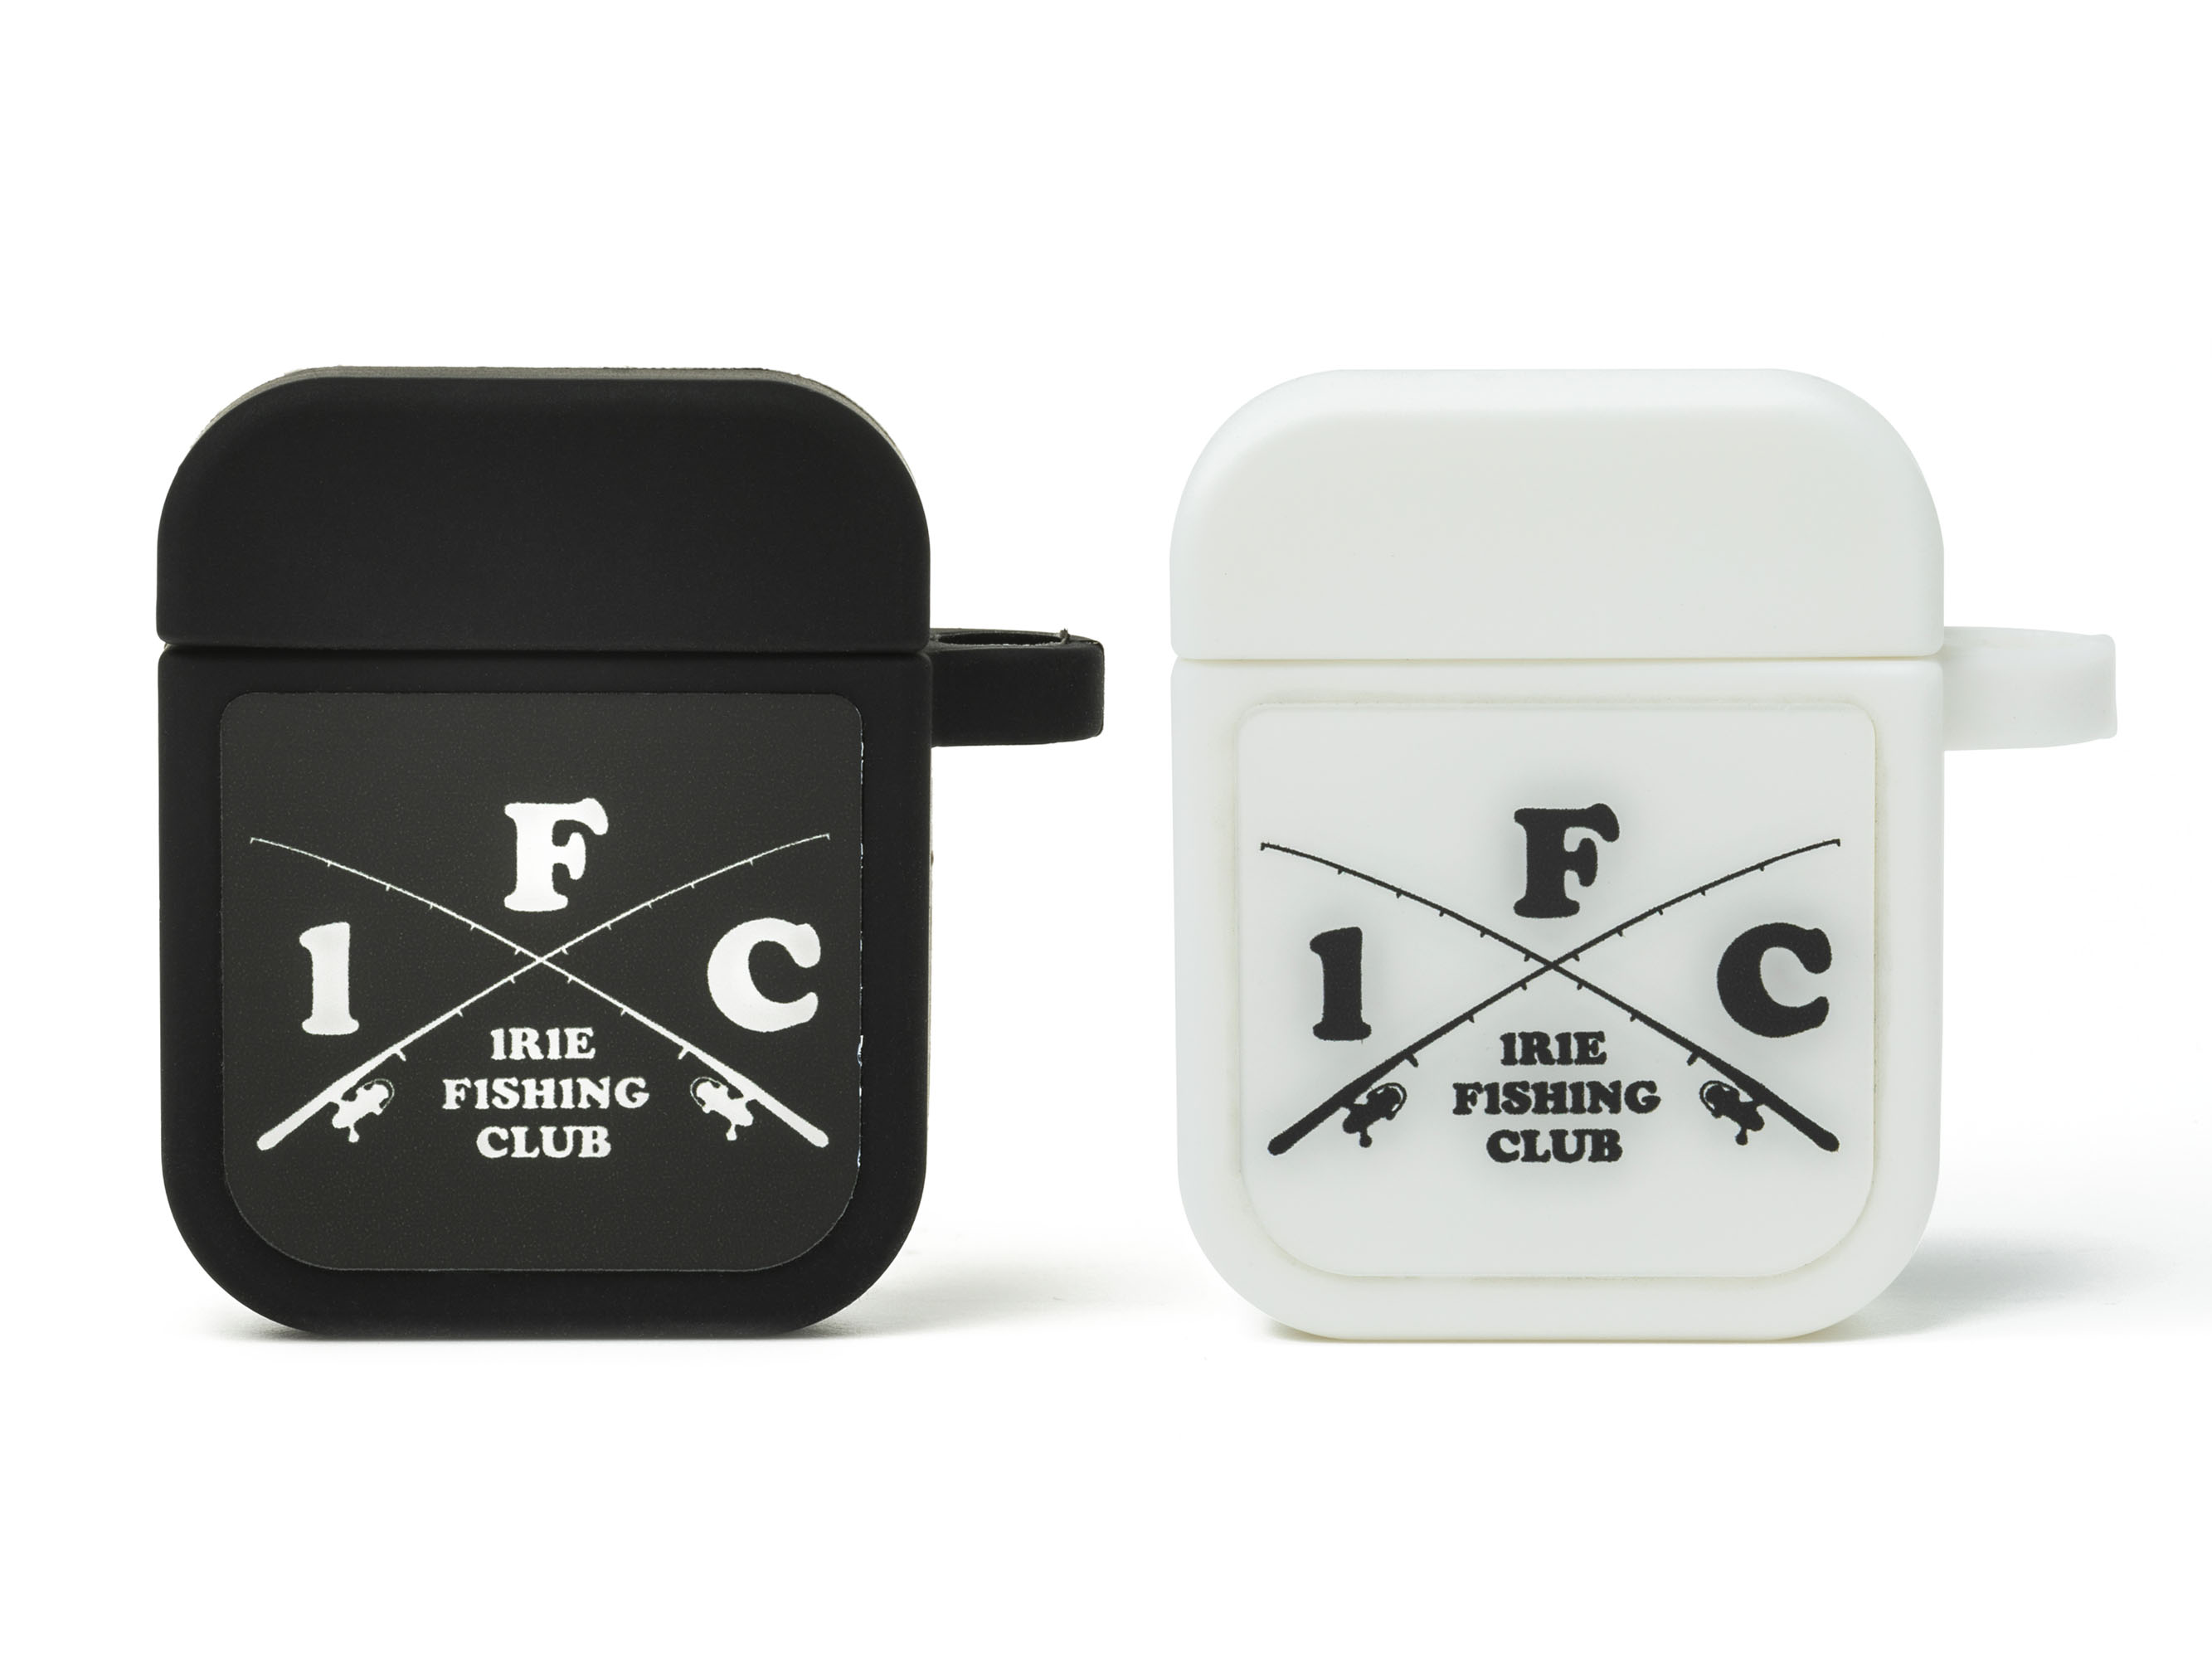 CROSS ROD AIR PODS CASE - IRIE FISHING CLUB